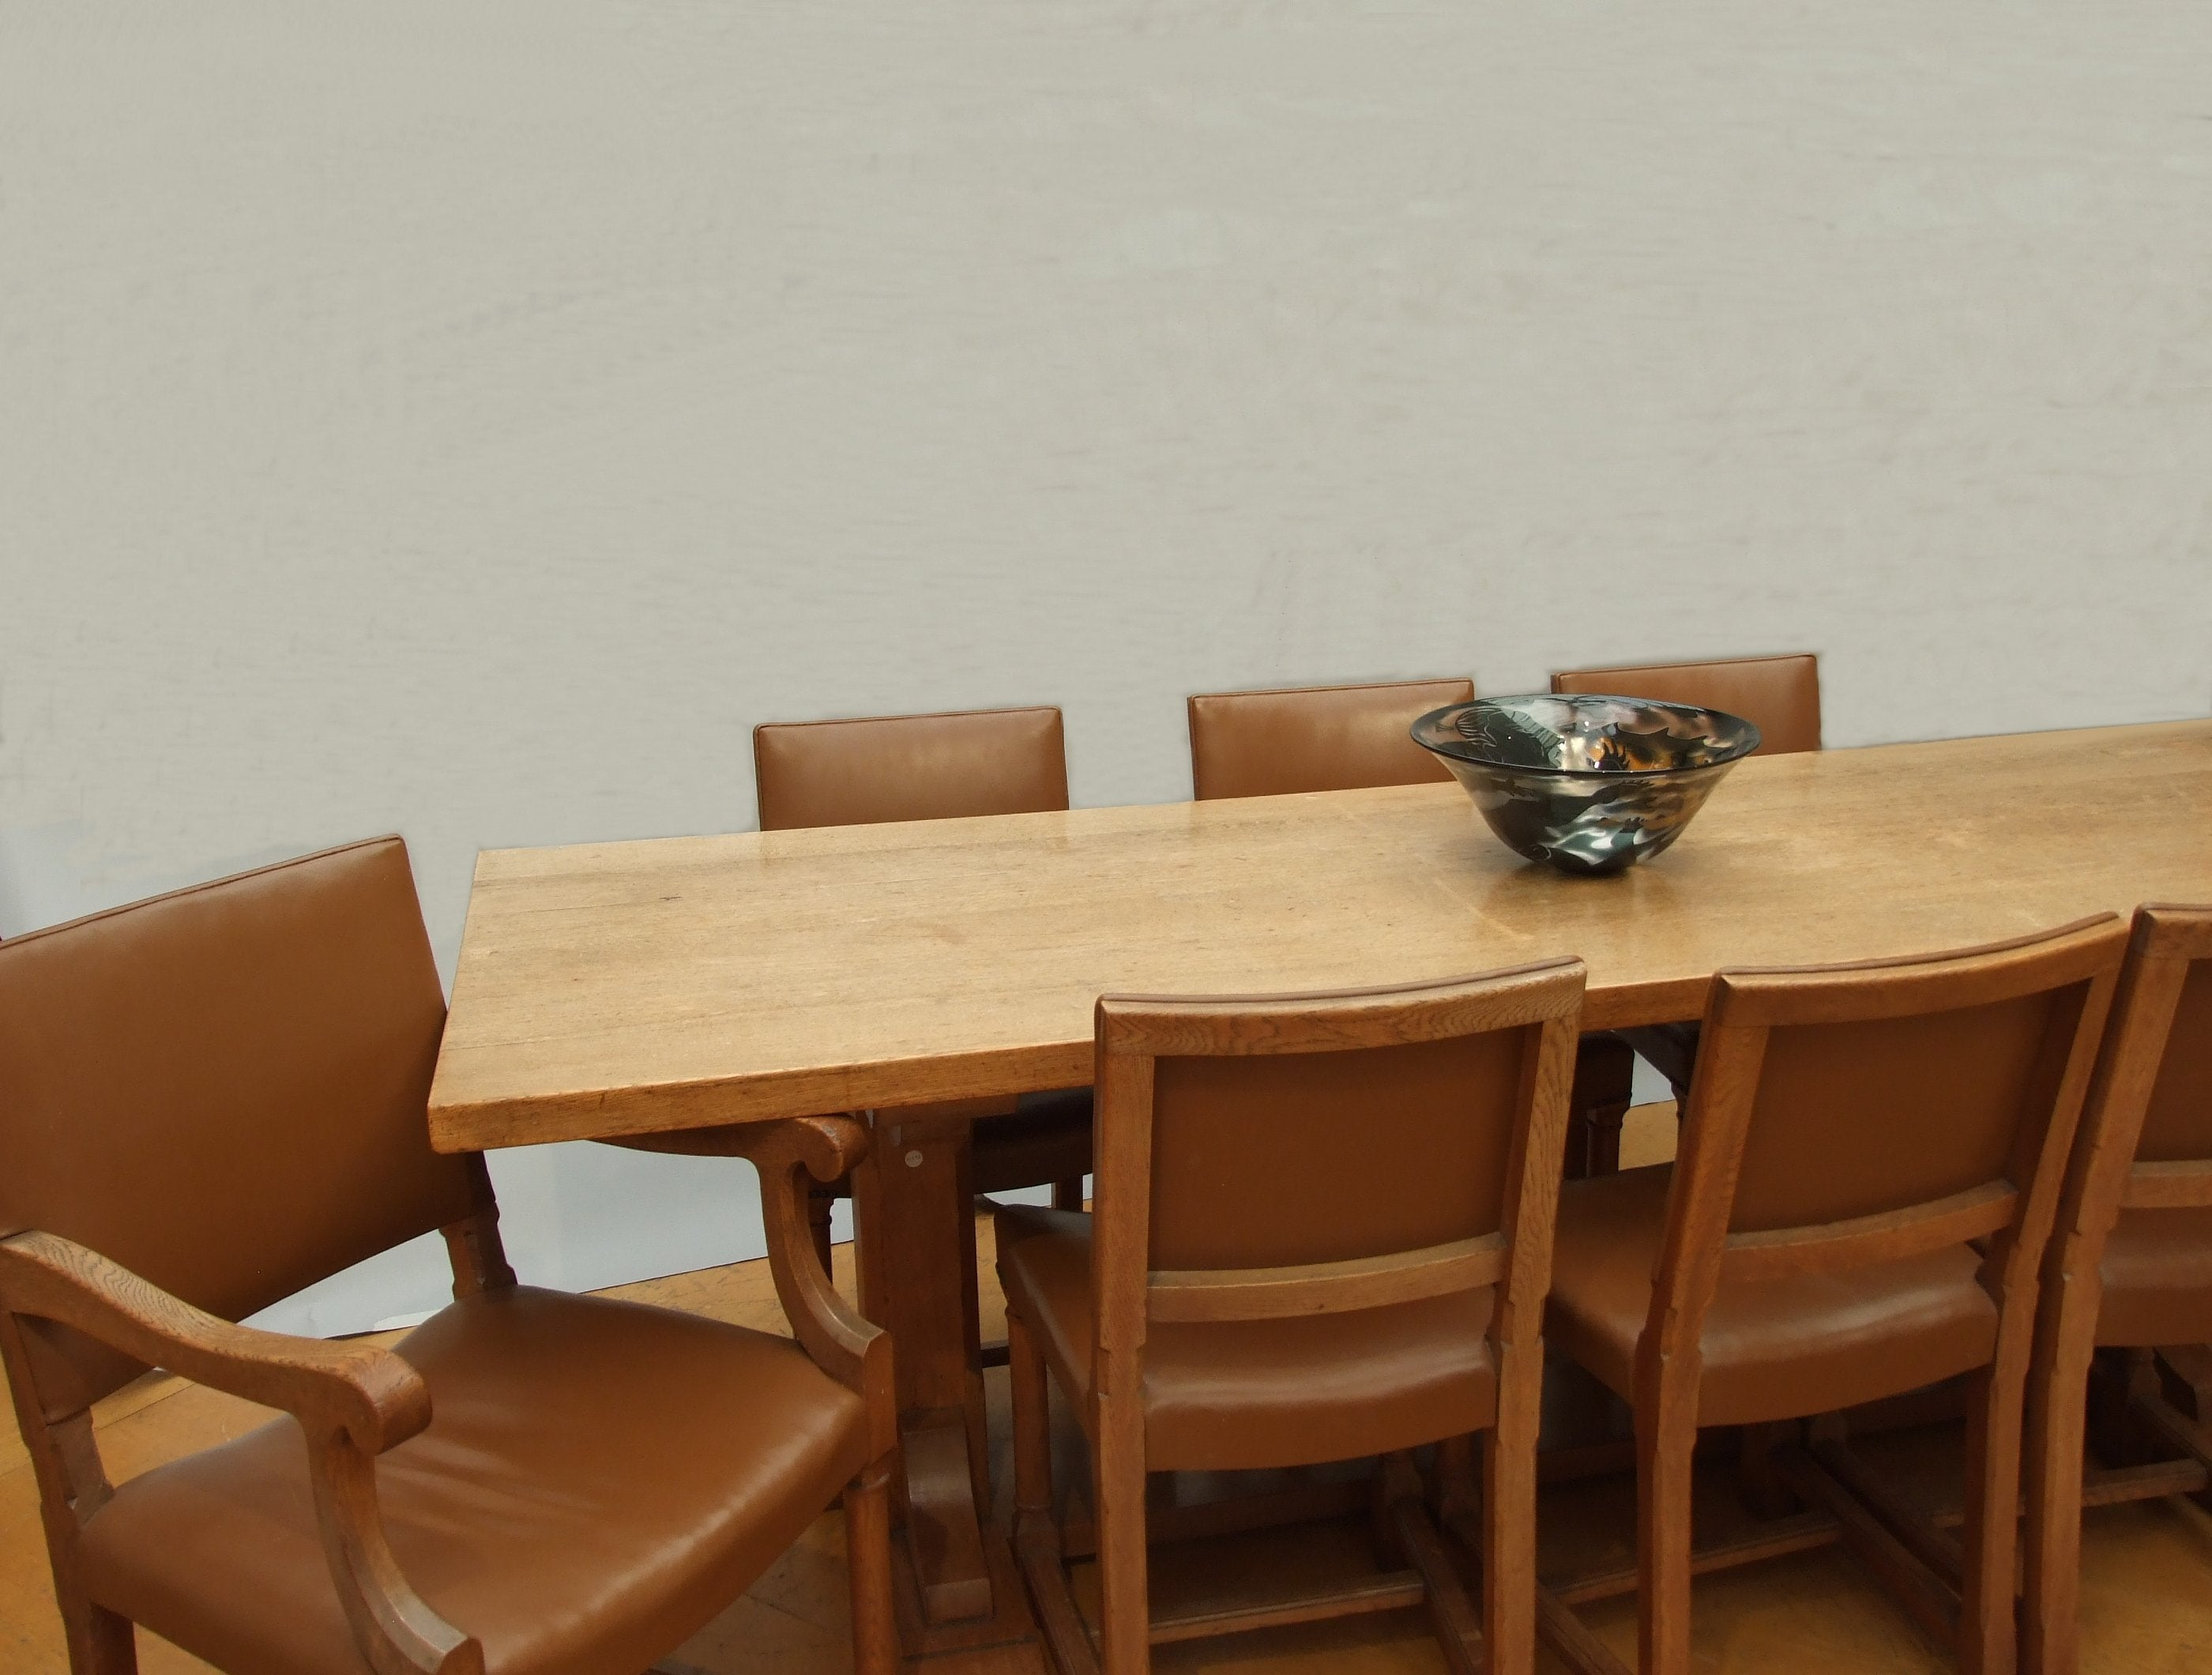 hot sale online dac59 5f283 A HEALS 8 FOOT DINING TABLE - The Millinery Works